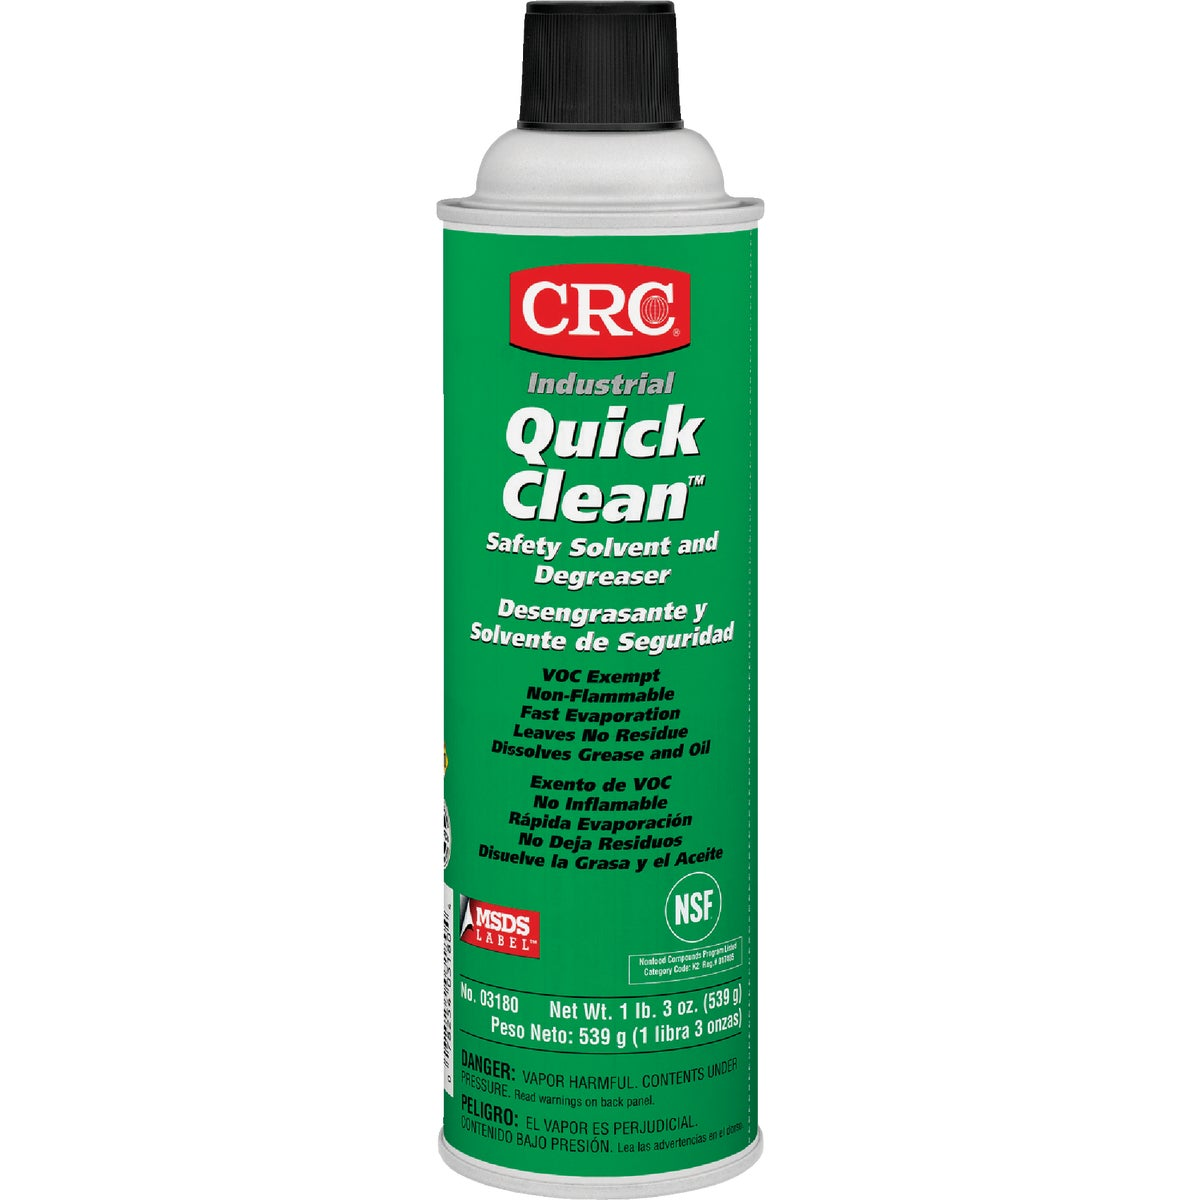 CHLORINATED DEGREASER - 03180 by Crc Industries Inc